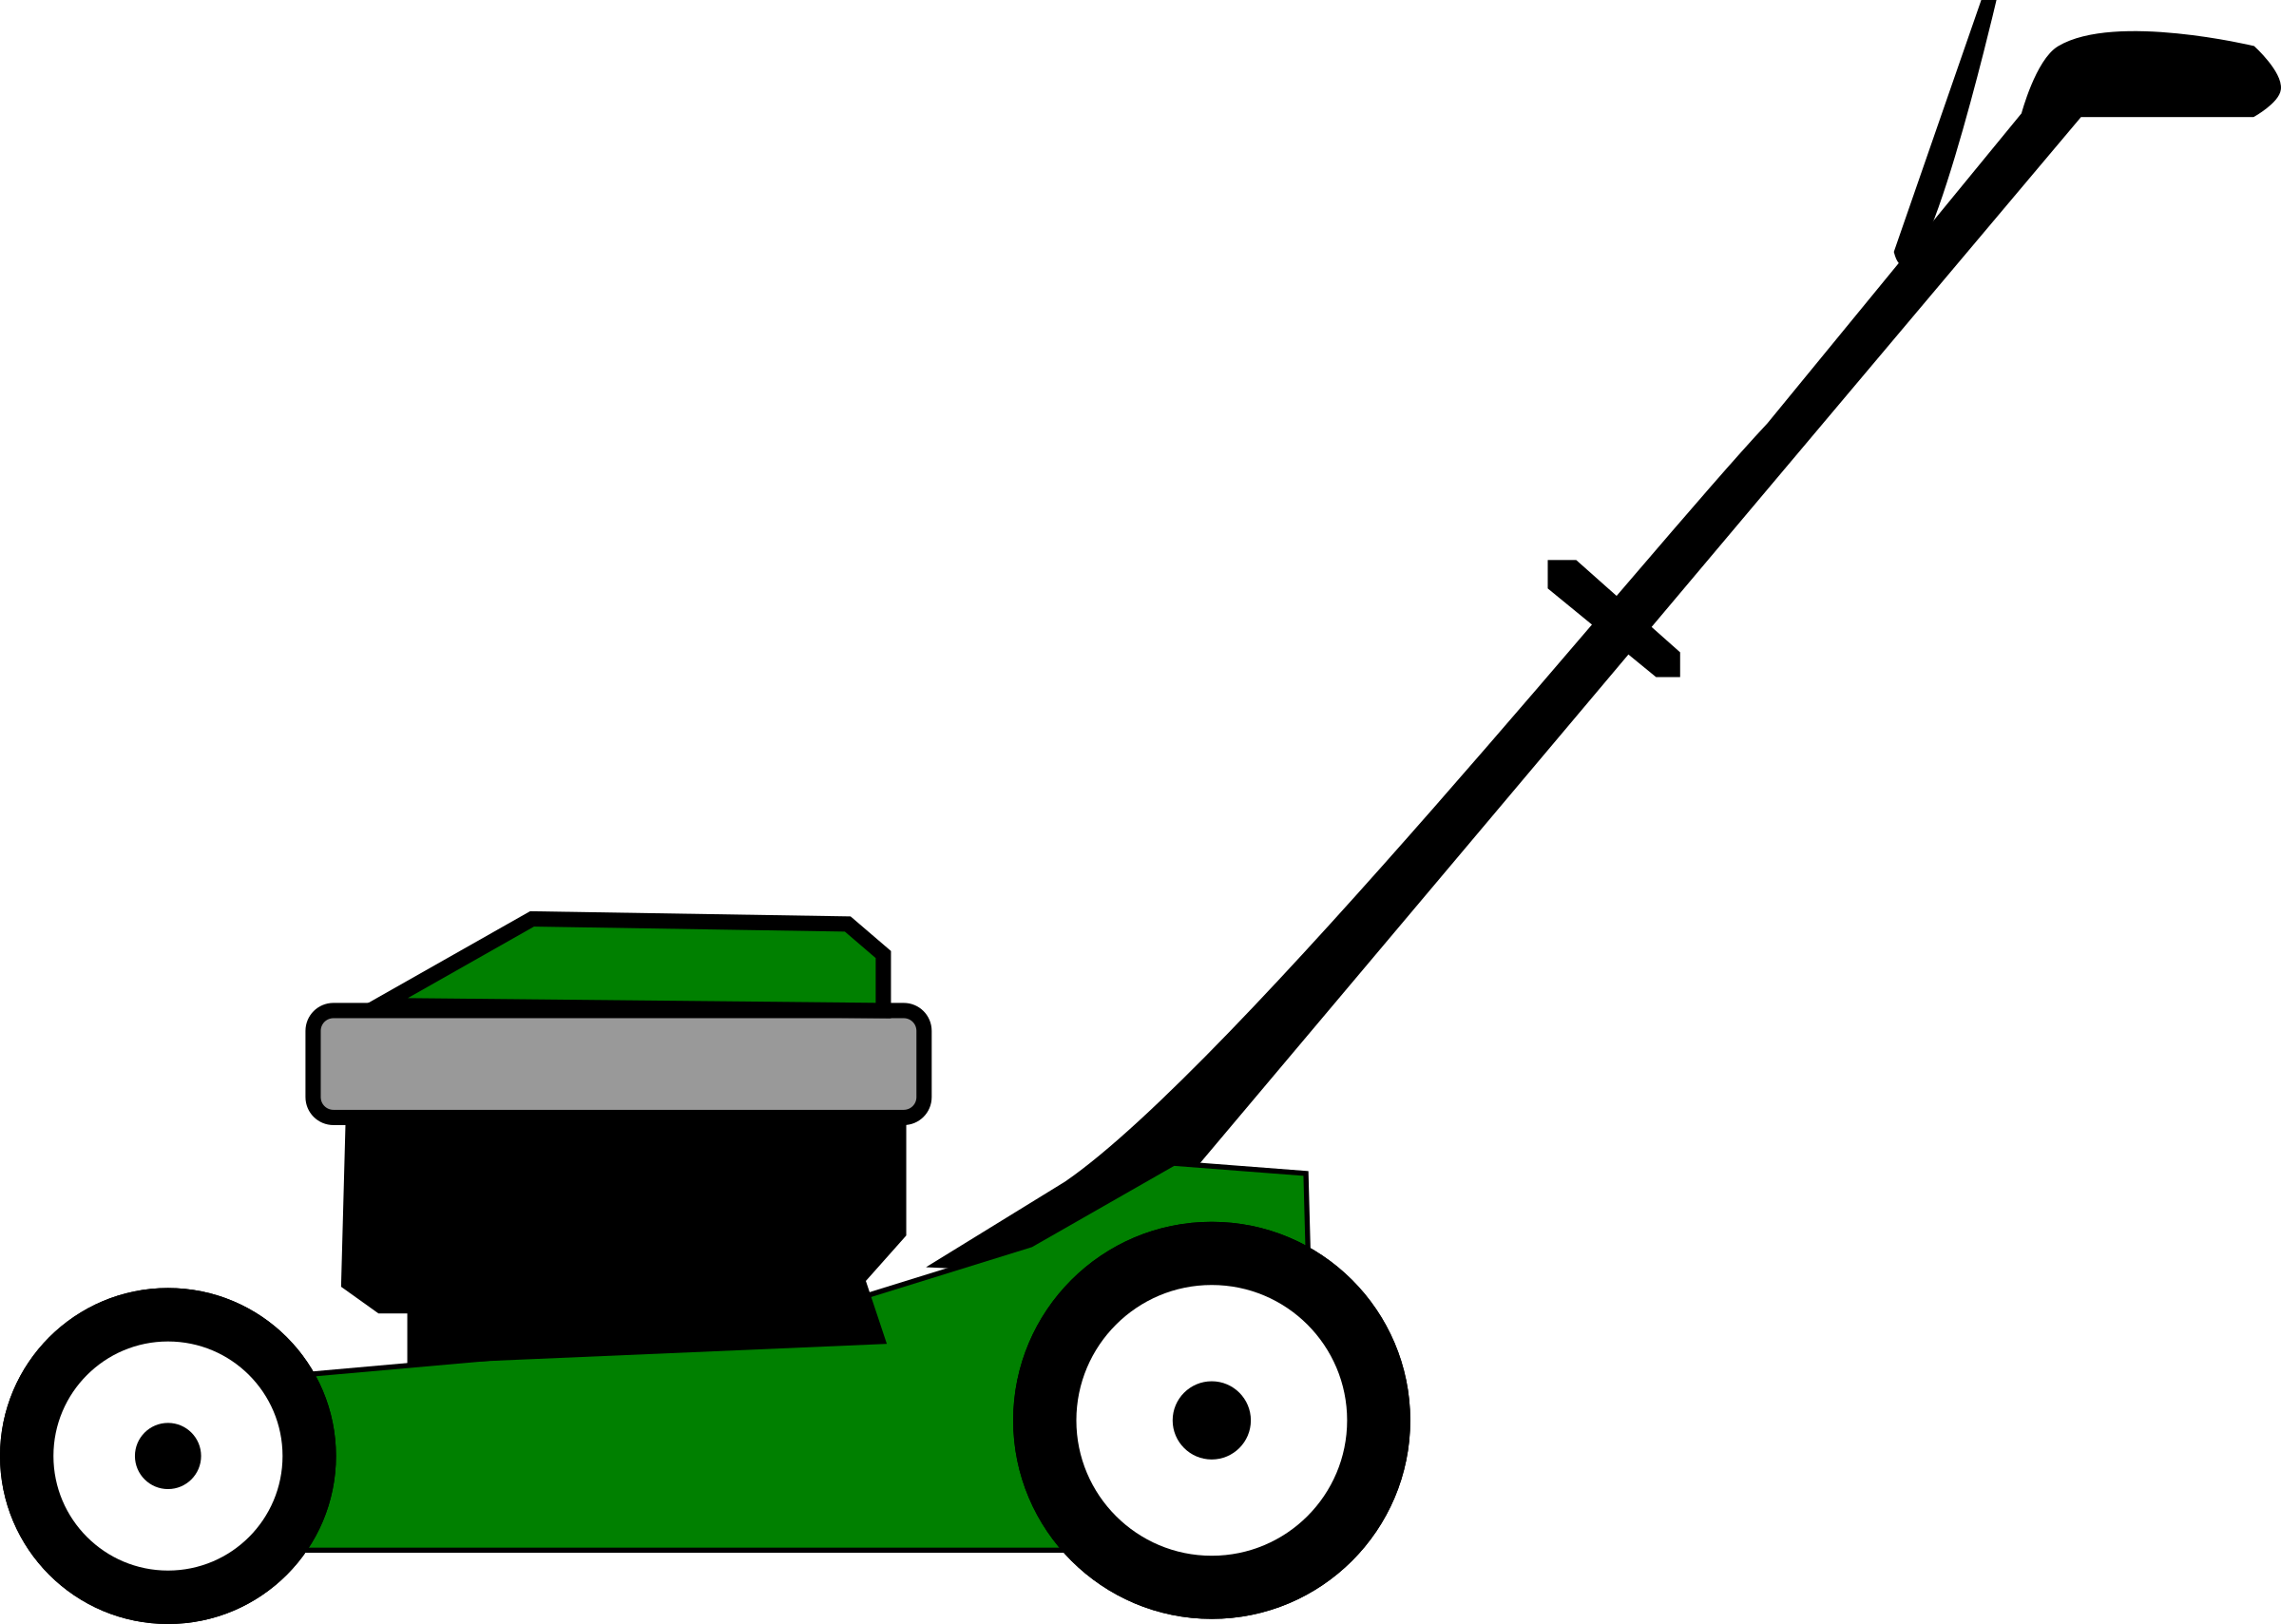 free clipart images lawn mower - photo #34